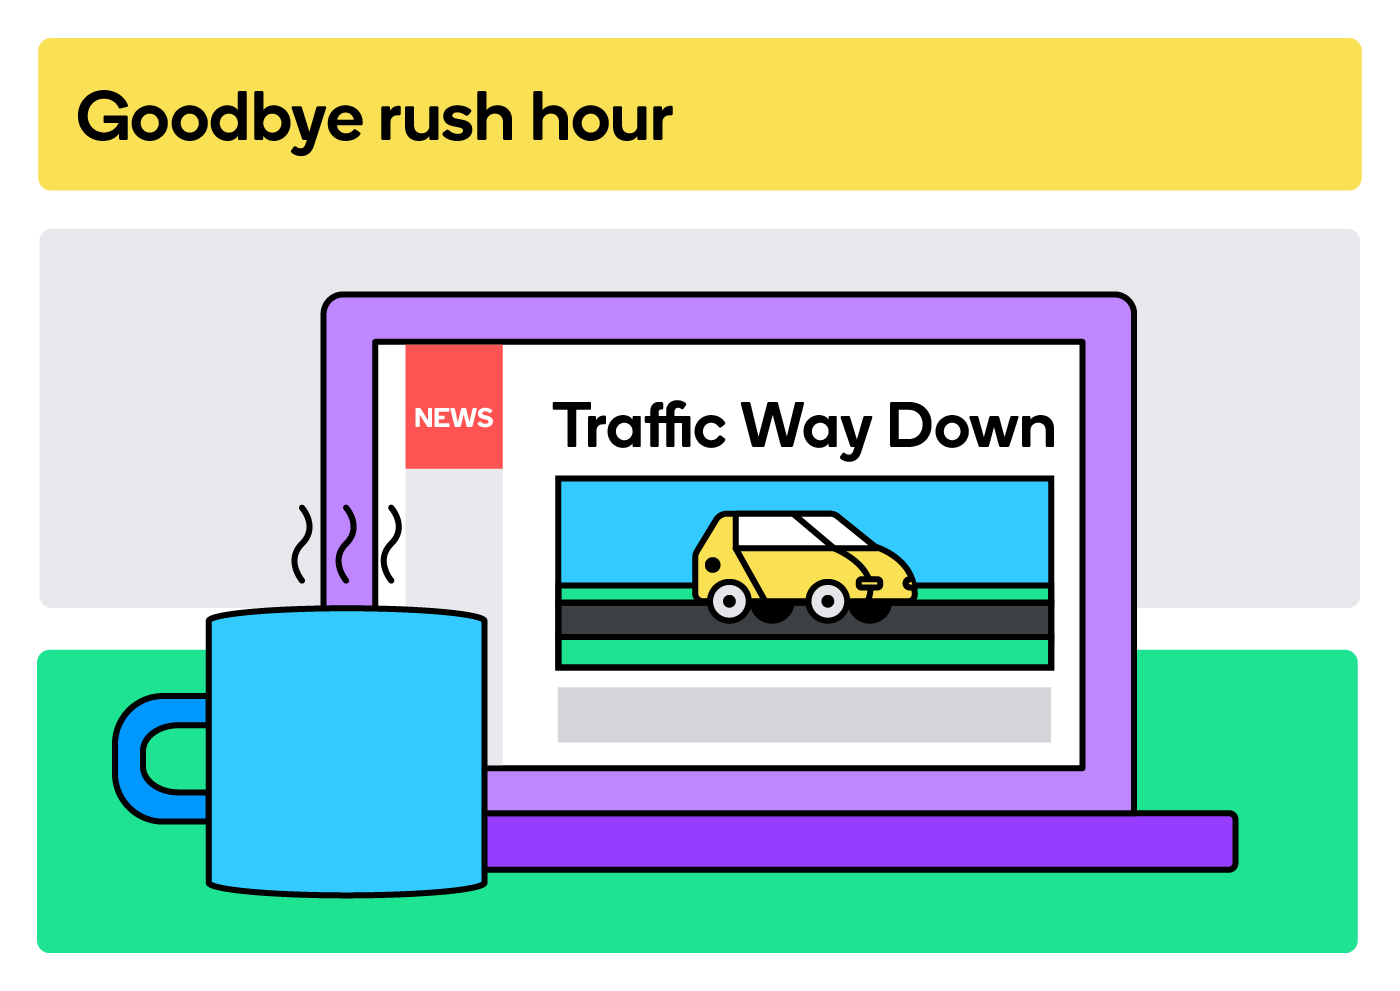 Remote work could mean saying goodbye to rush hour.